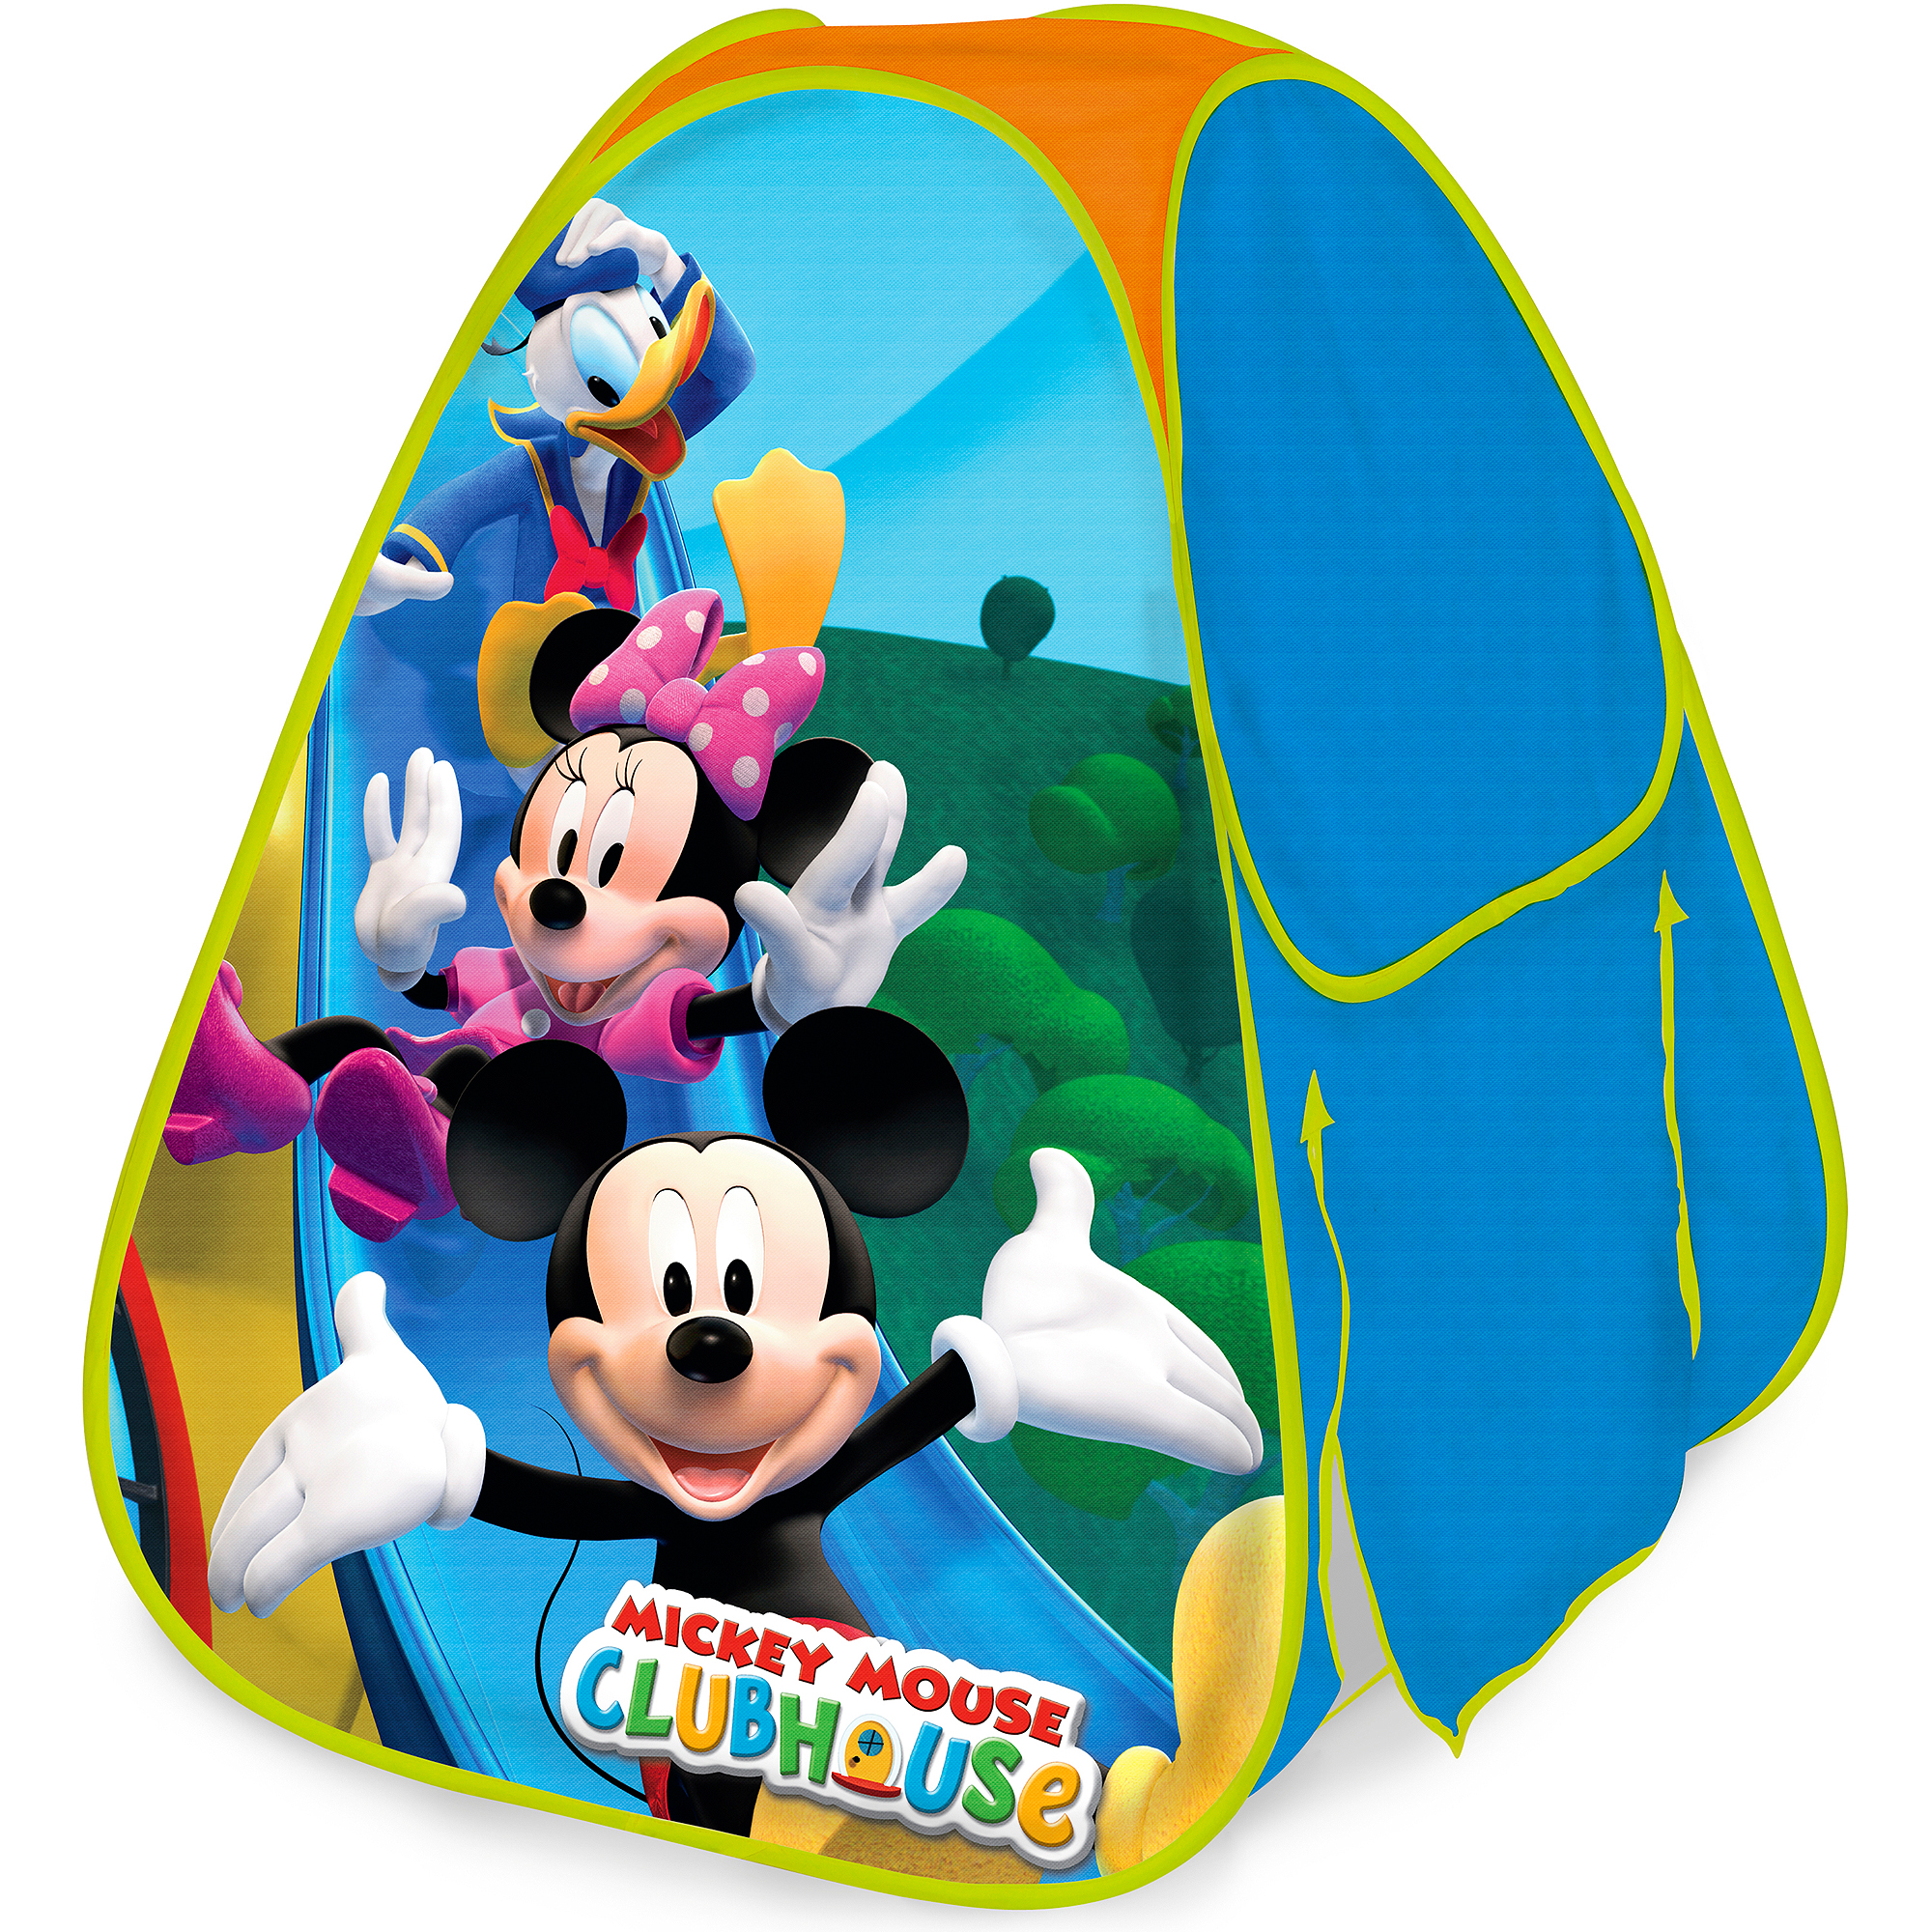 Disney Mickey Mouse Classic Hideaway  sc 1 st  Walmart & Disney Mickey Mouse Classic Hideaway - Walmart.com